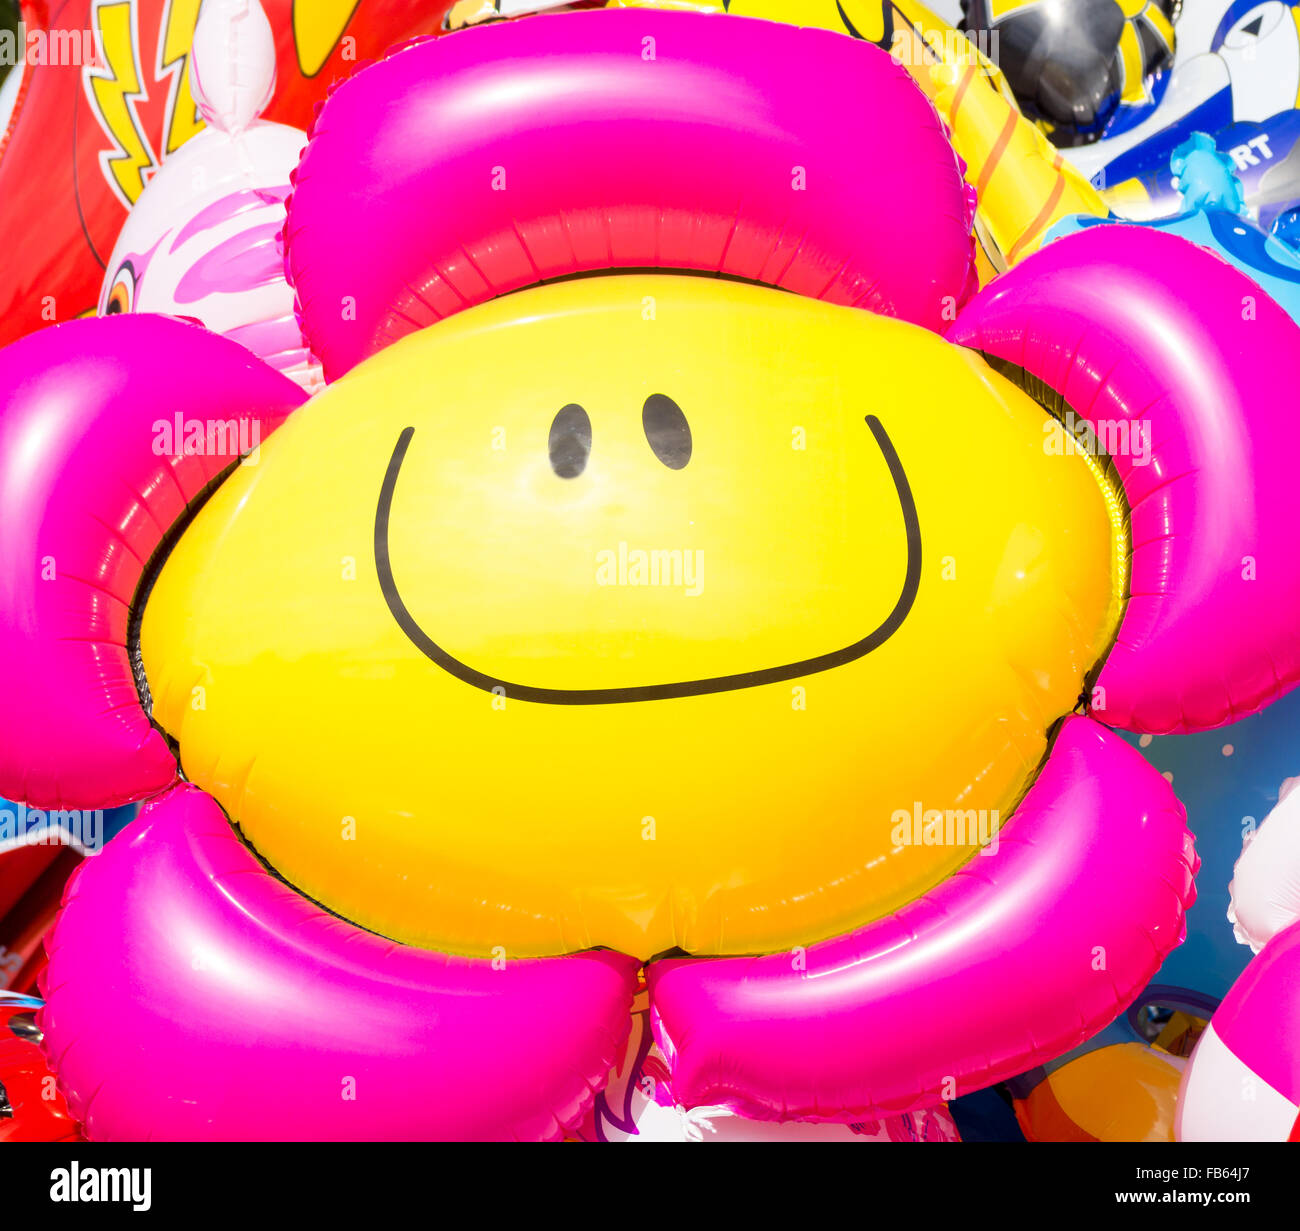 The sun in the face. Image of a flower smiley baloon that look and follow the sun - Stock Image